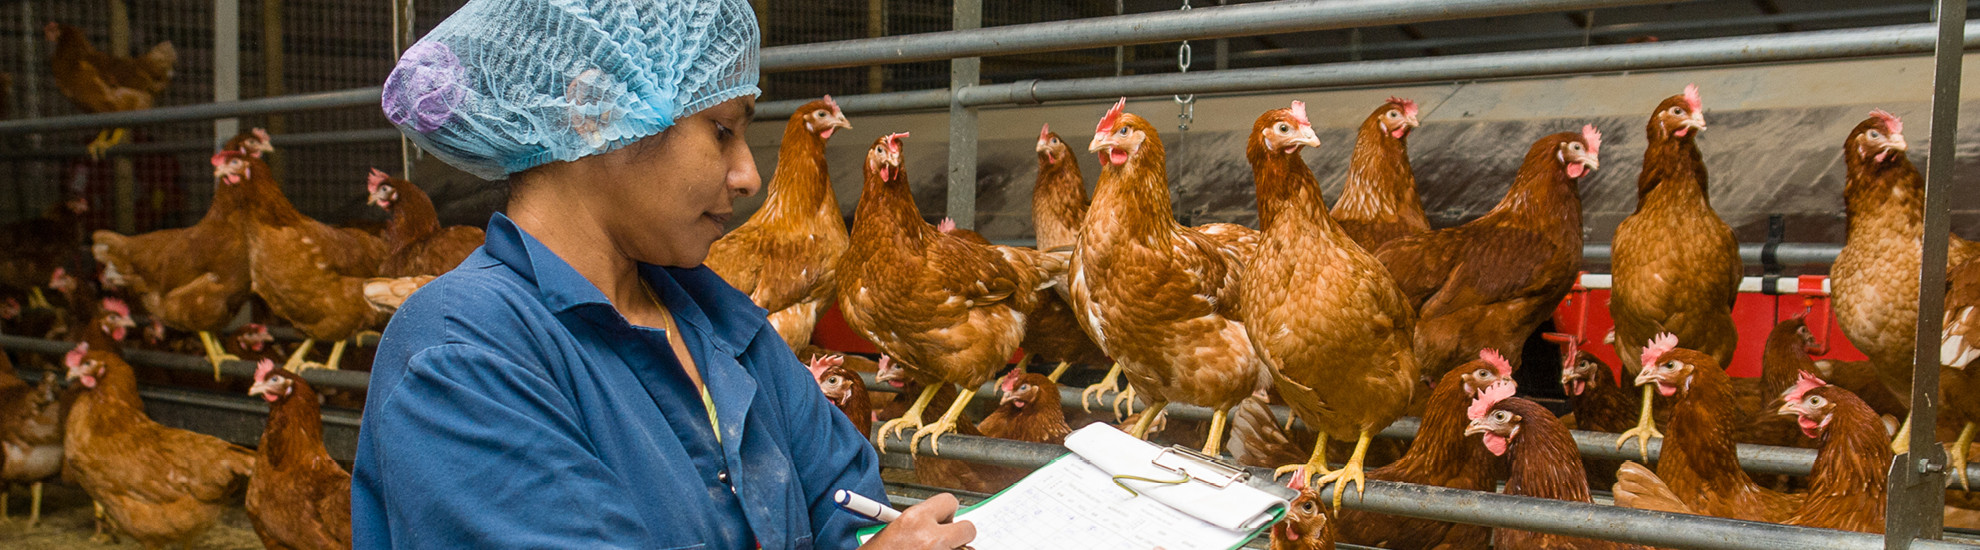 Women taking notes in poultry house